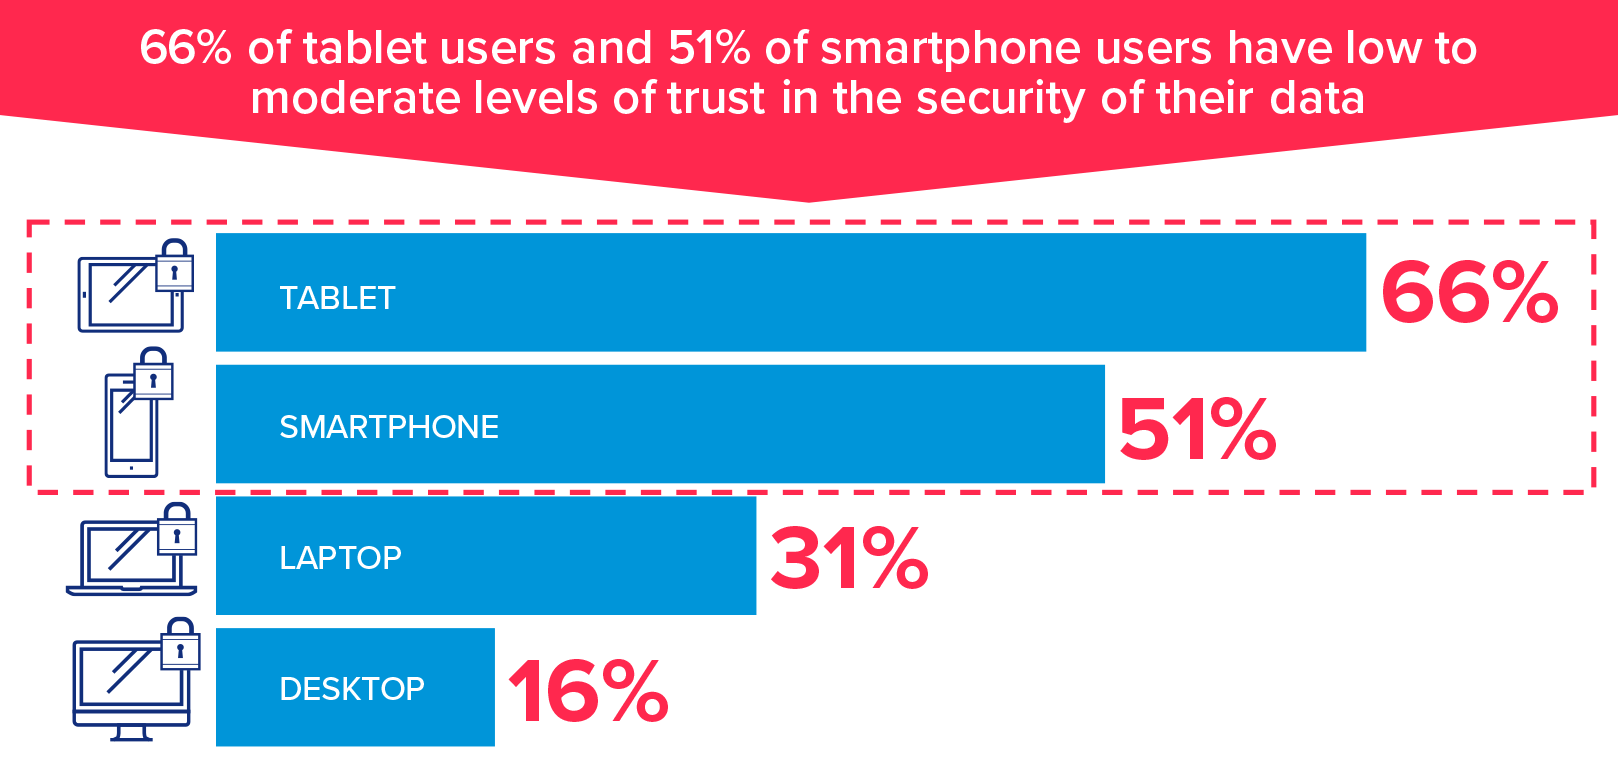 66% of tablet users and 51% of smartphone users have low to moderate levels of trust in the security of their data